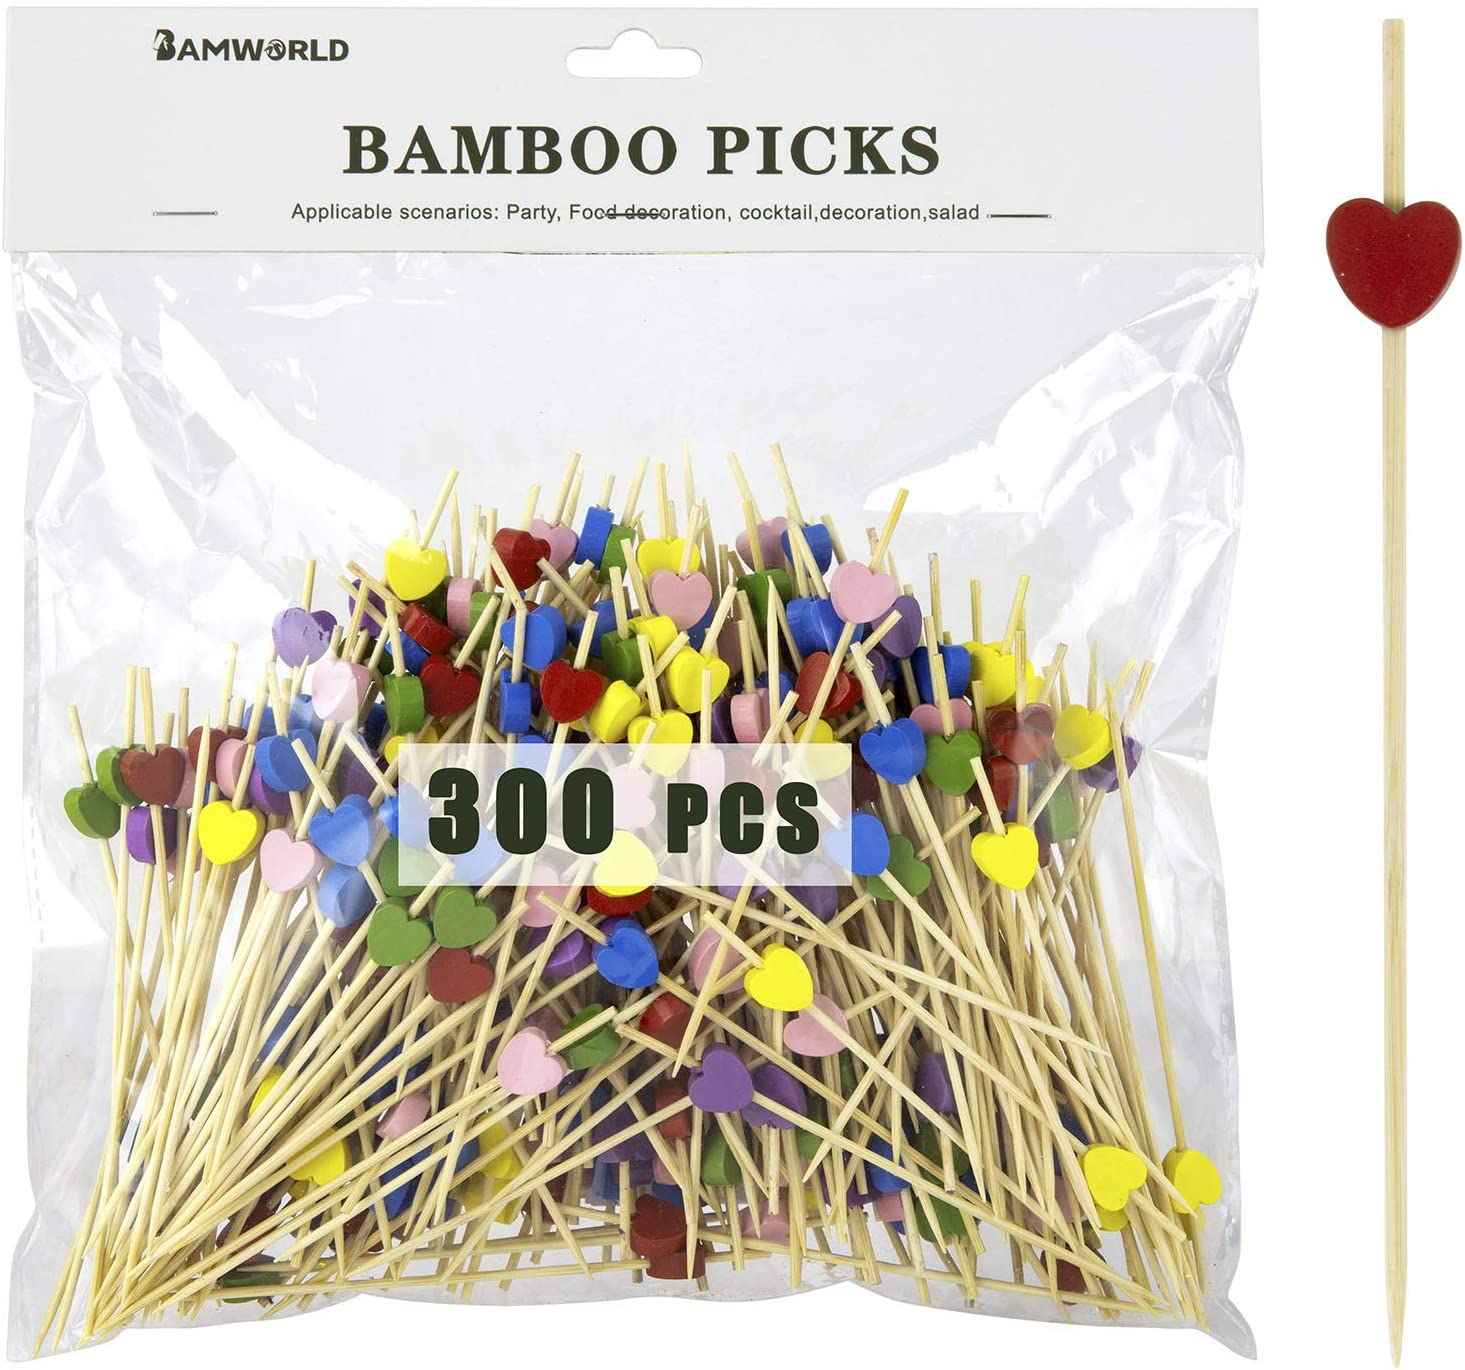 Bamboo Cocktail Picks Bamboo Skewers Food Picks 4.7 Inch Toothpicks with Handmade Design Skewers for Party Fruit and Food Snacks (Love, 300)